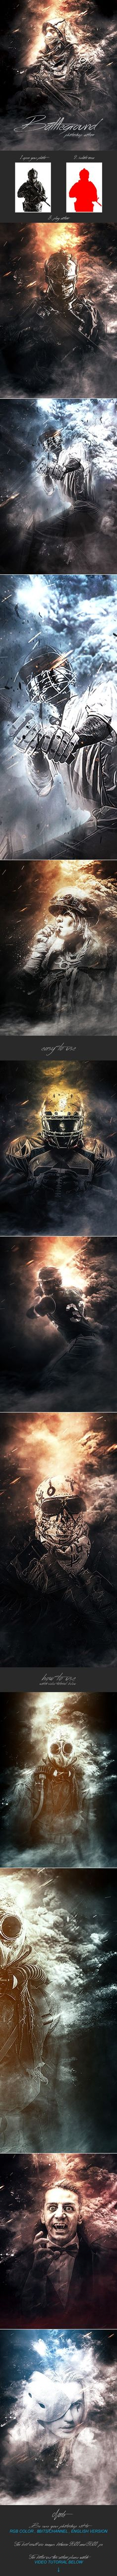 Battleground  Photoshop Action — Photoshop ATN #sketch #background • Available here ➝ https://graphicriver.net/item/battleground-photoshop-action/20614837?ref=pxcr